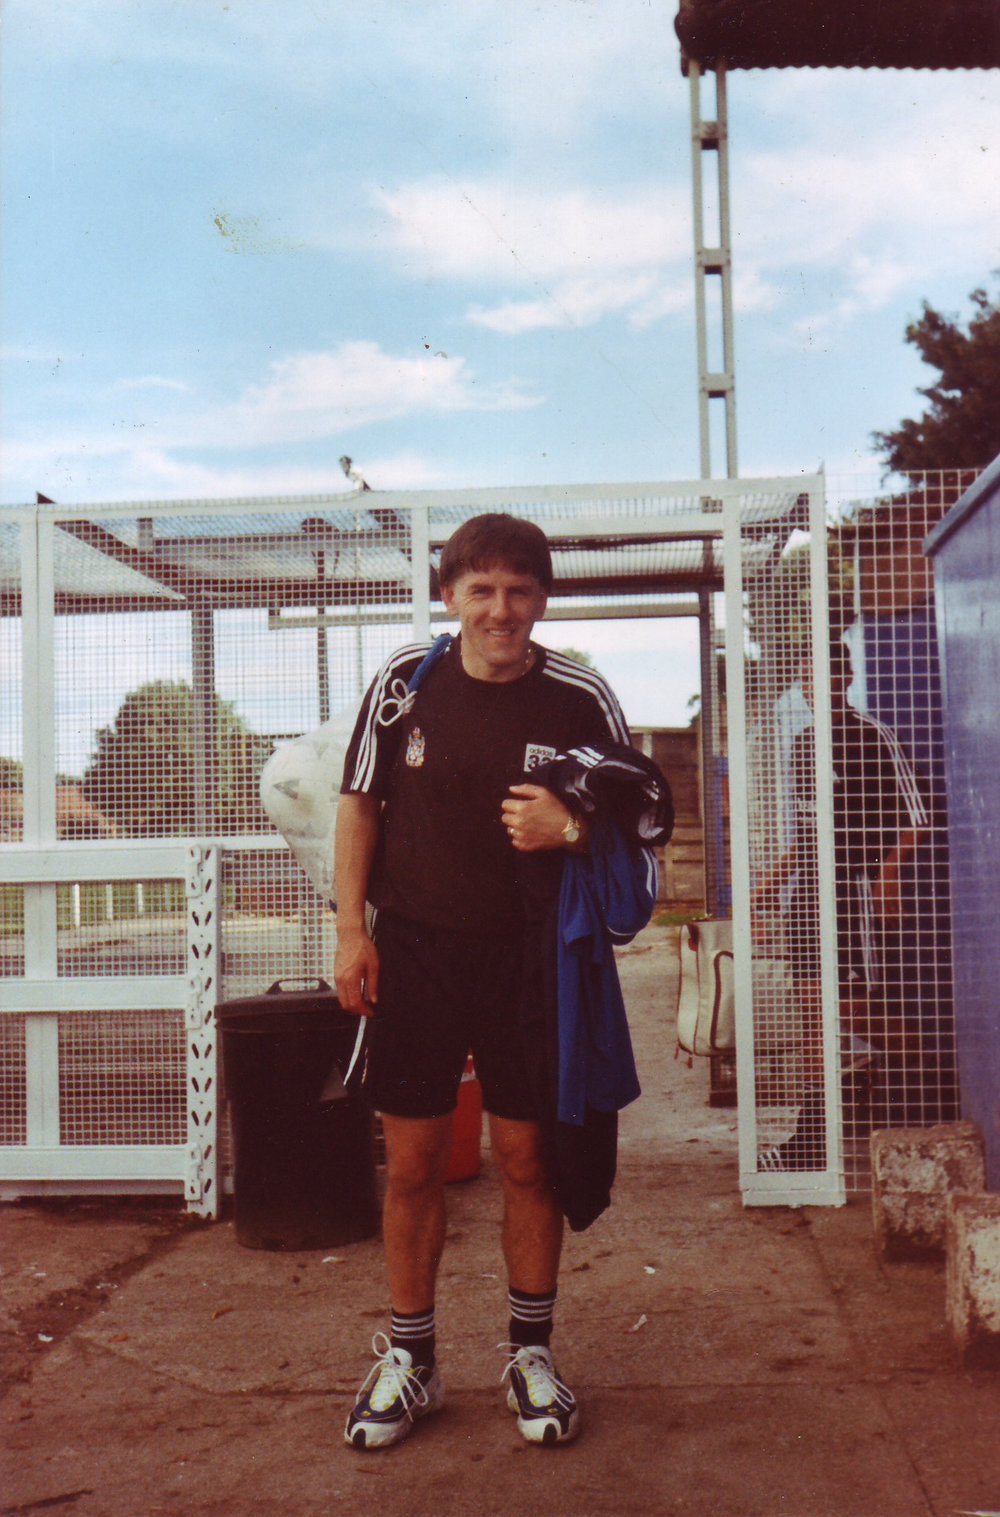 During the 1998-99 season when Fulham were in the third tier of English football they used Park Road as a training facility. Here's the familiar face of Peter Beardsley.